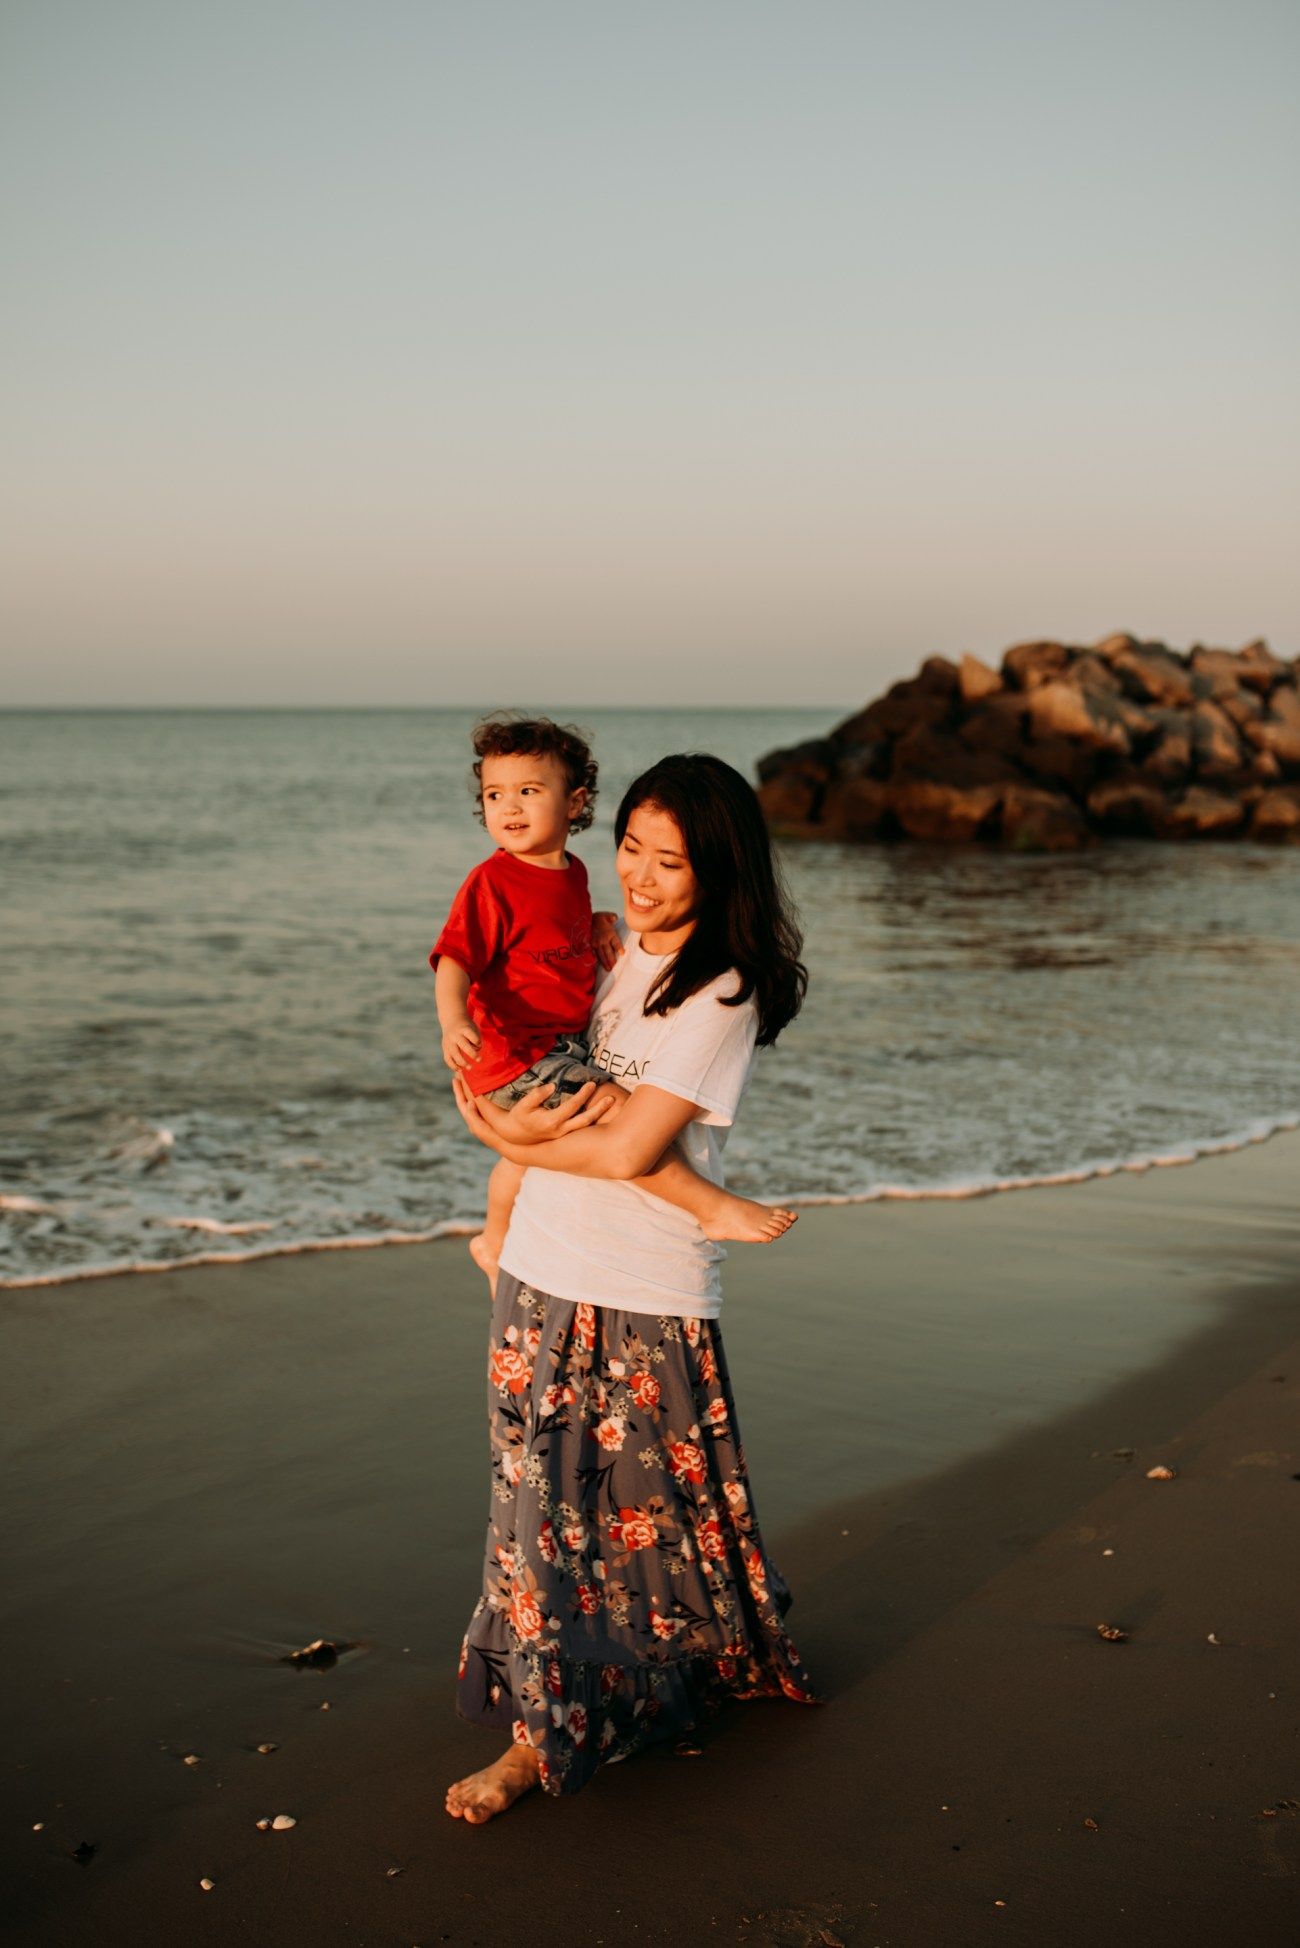 CamilleCamachoPhotography_virginia_lifestyle_beach-24